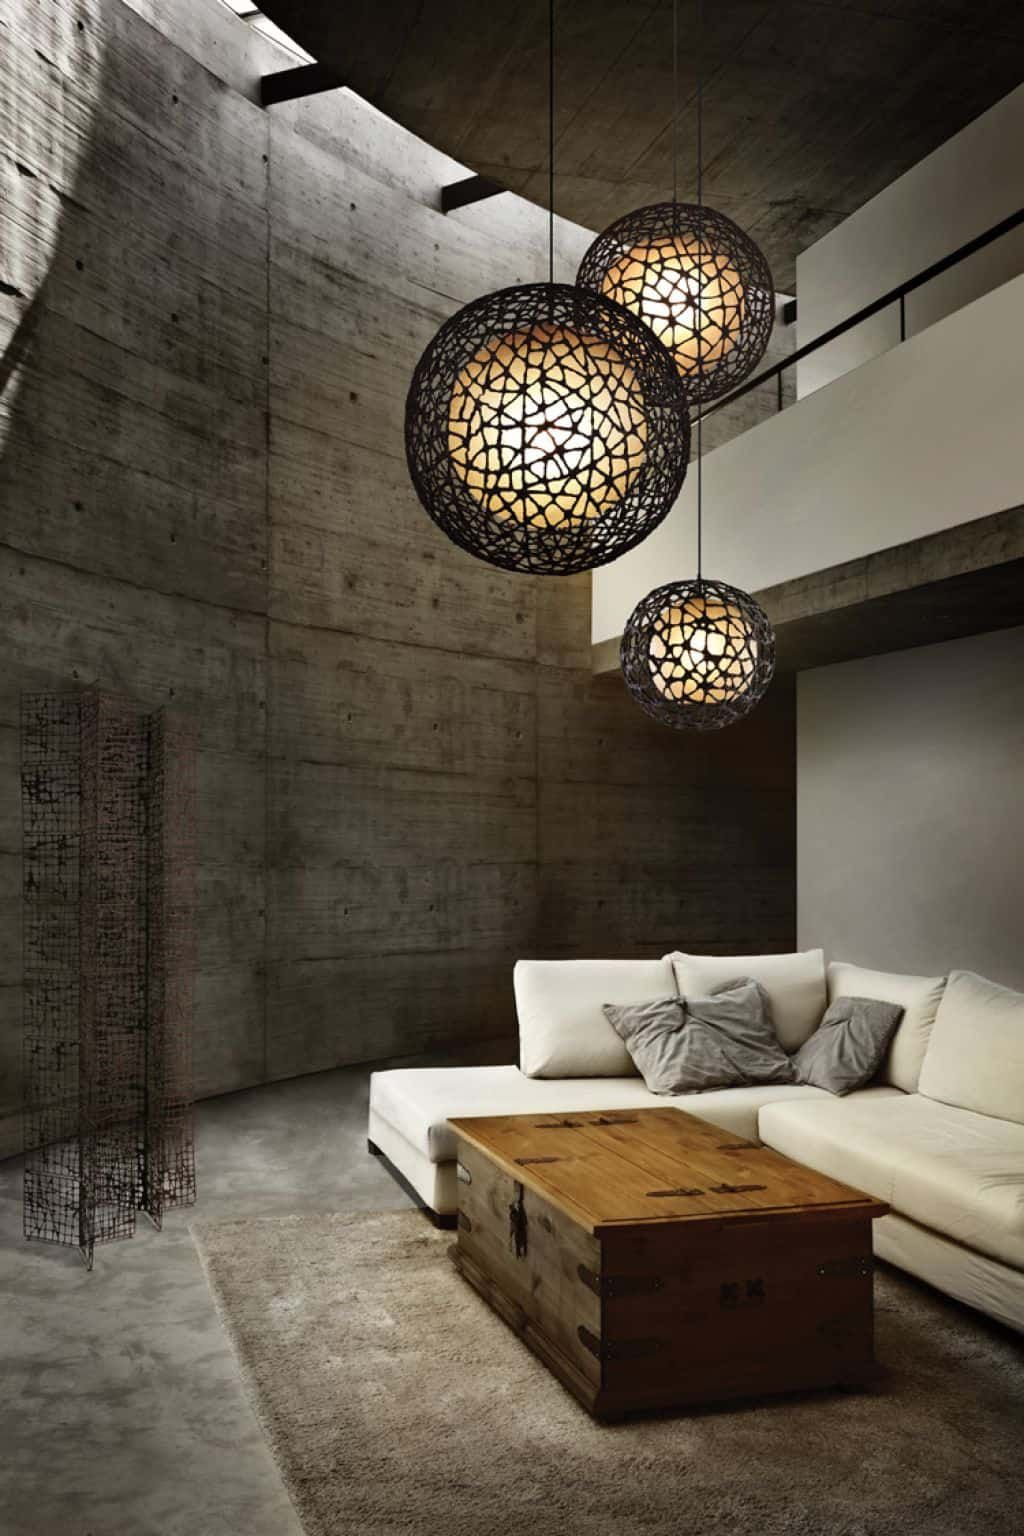 Living Room With Concrete Walls And Floors Also Contemporary Lighting Functional Artsy Fixtures